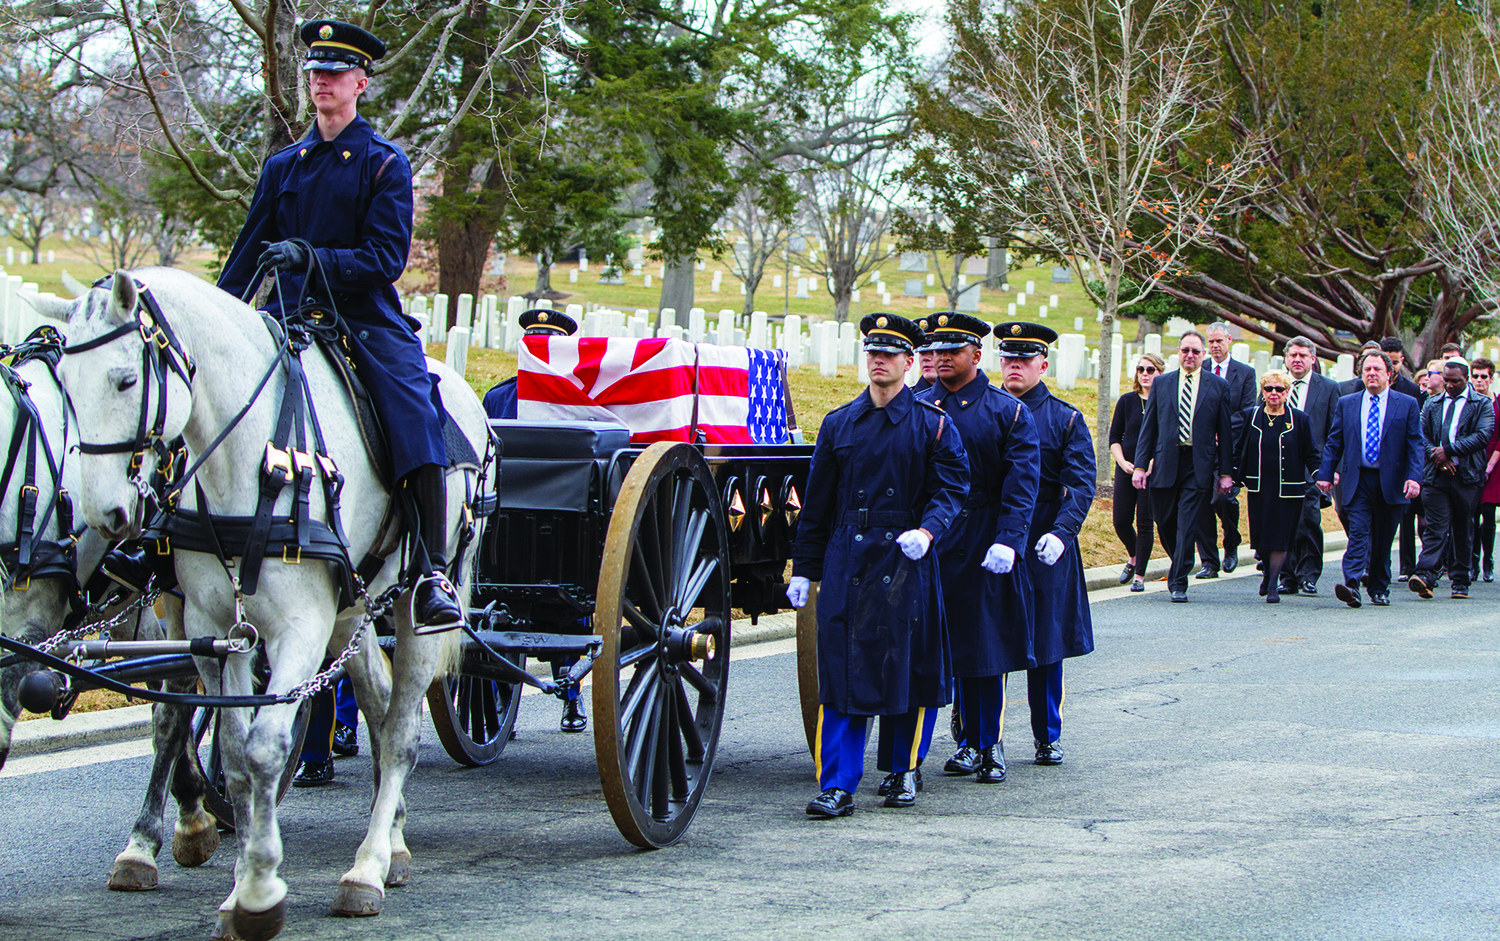 The caisson with the casket of Lt. Col. Jack Lustig heads to the burial site at 